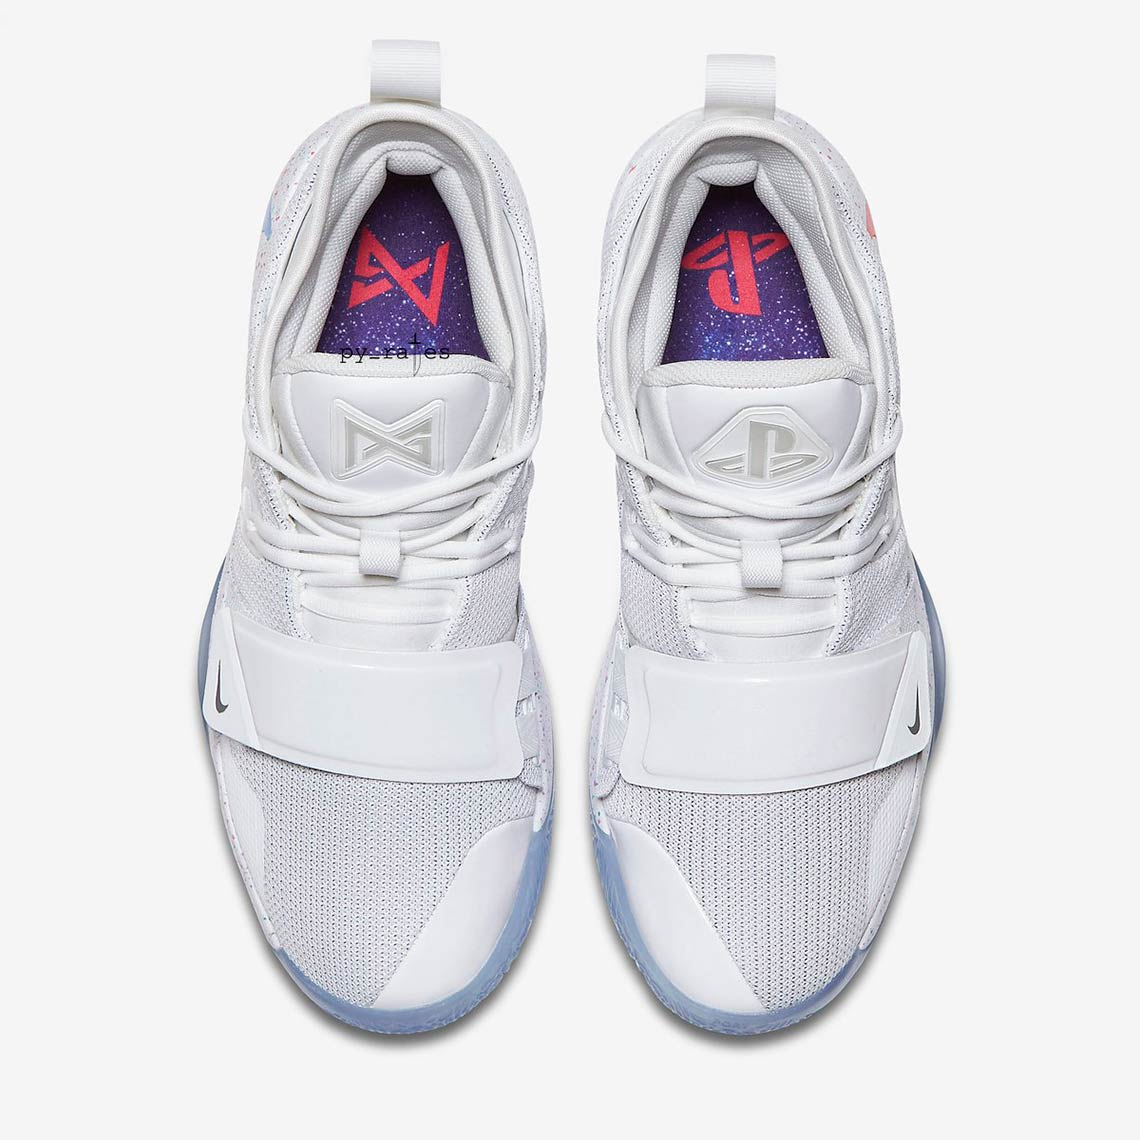 biggest discount 2d611 c5ac1 Nike PG 2.5 PlayStation White Paul George Release Info ...